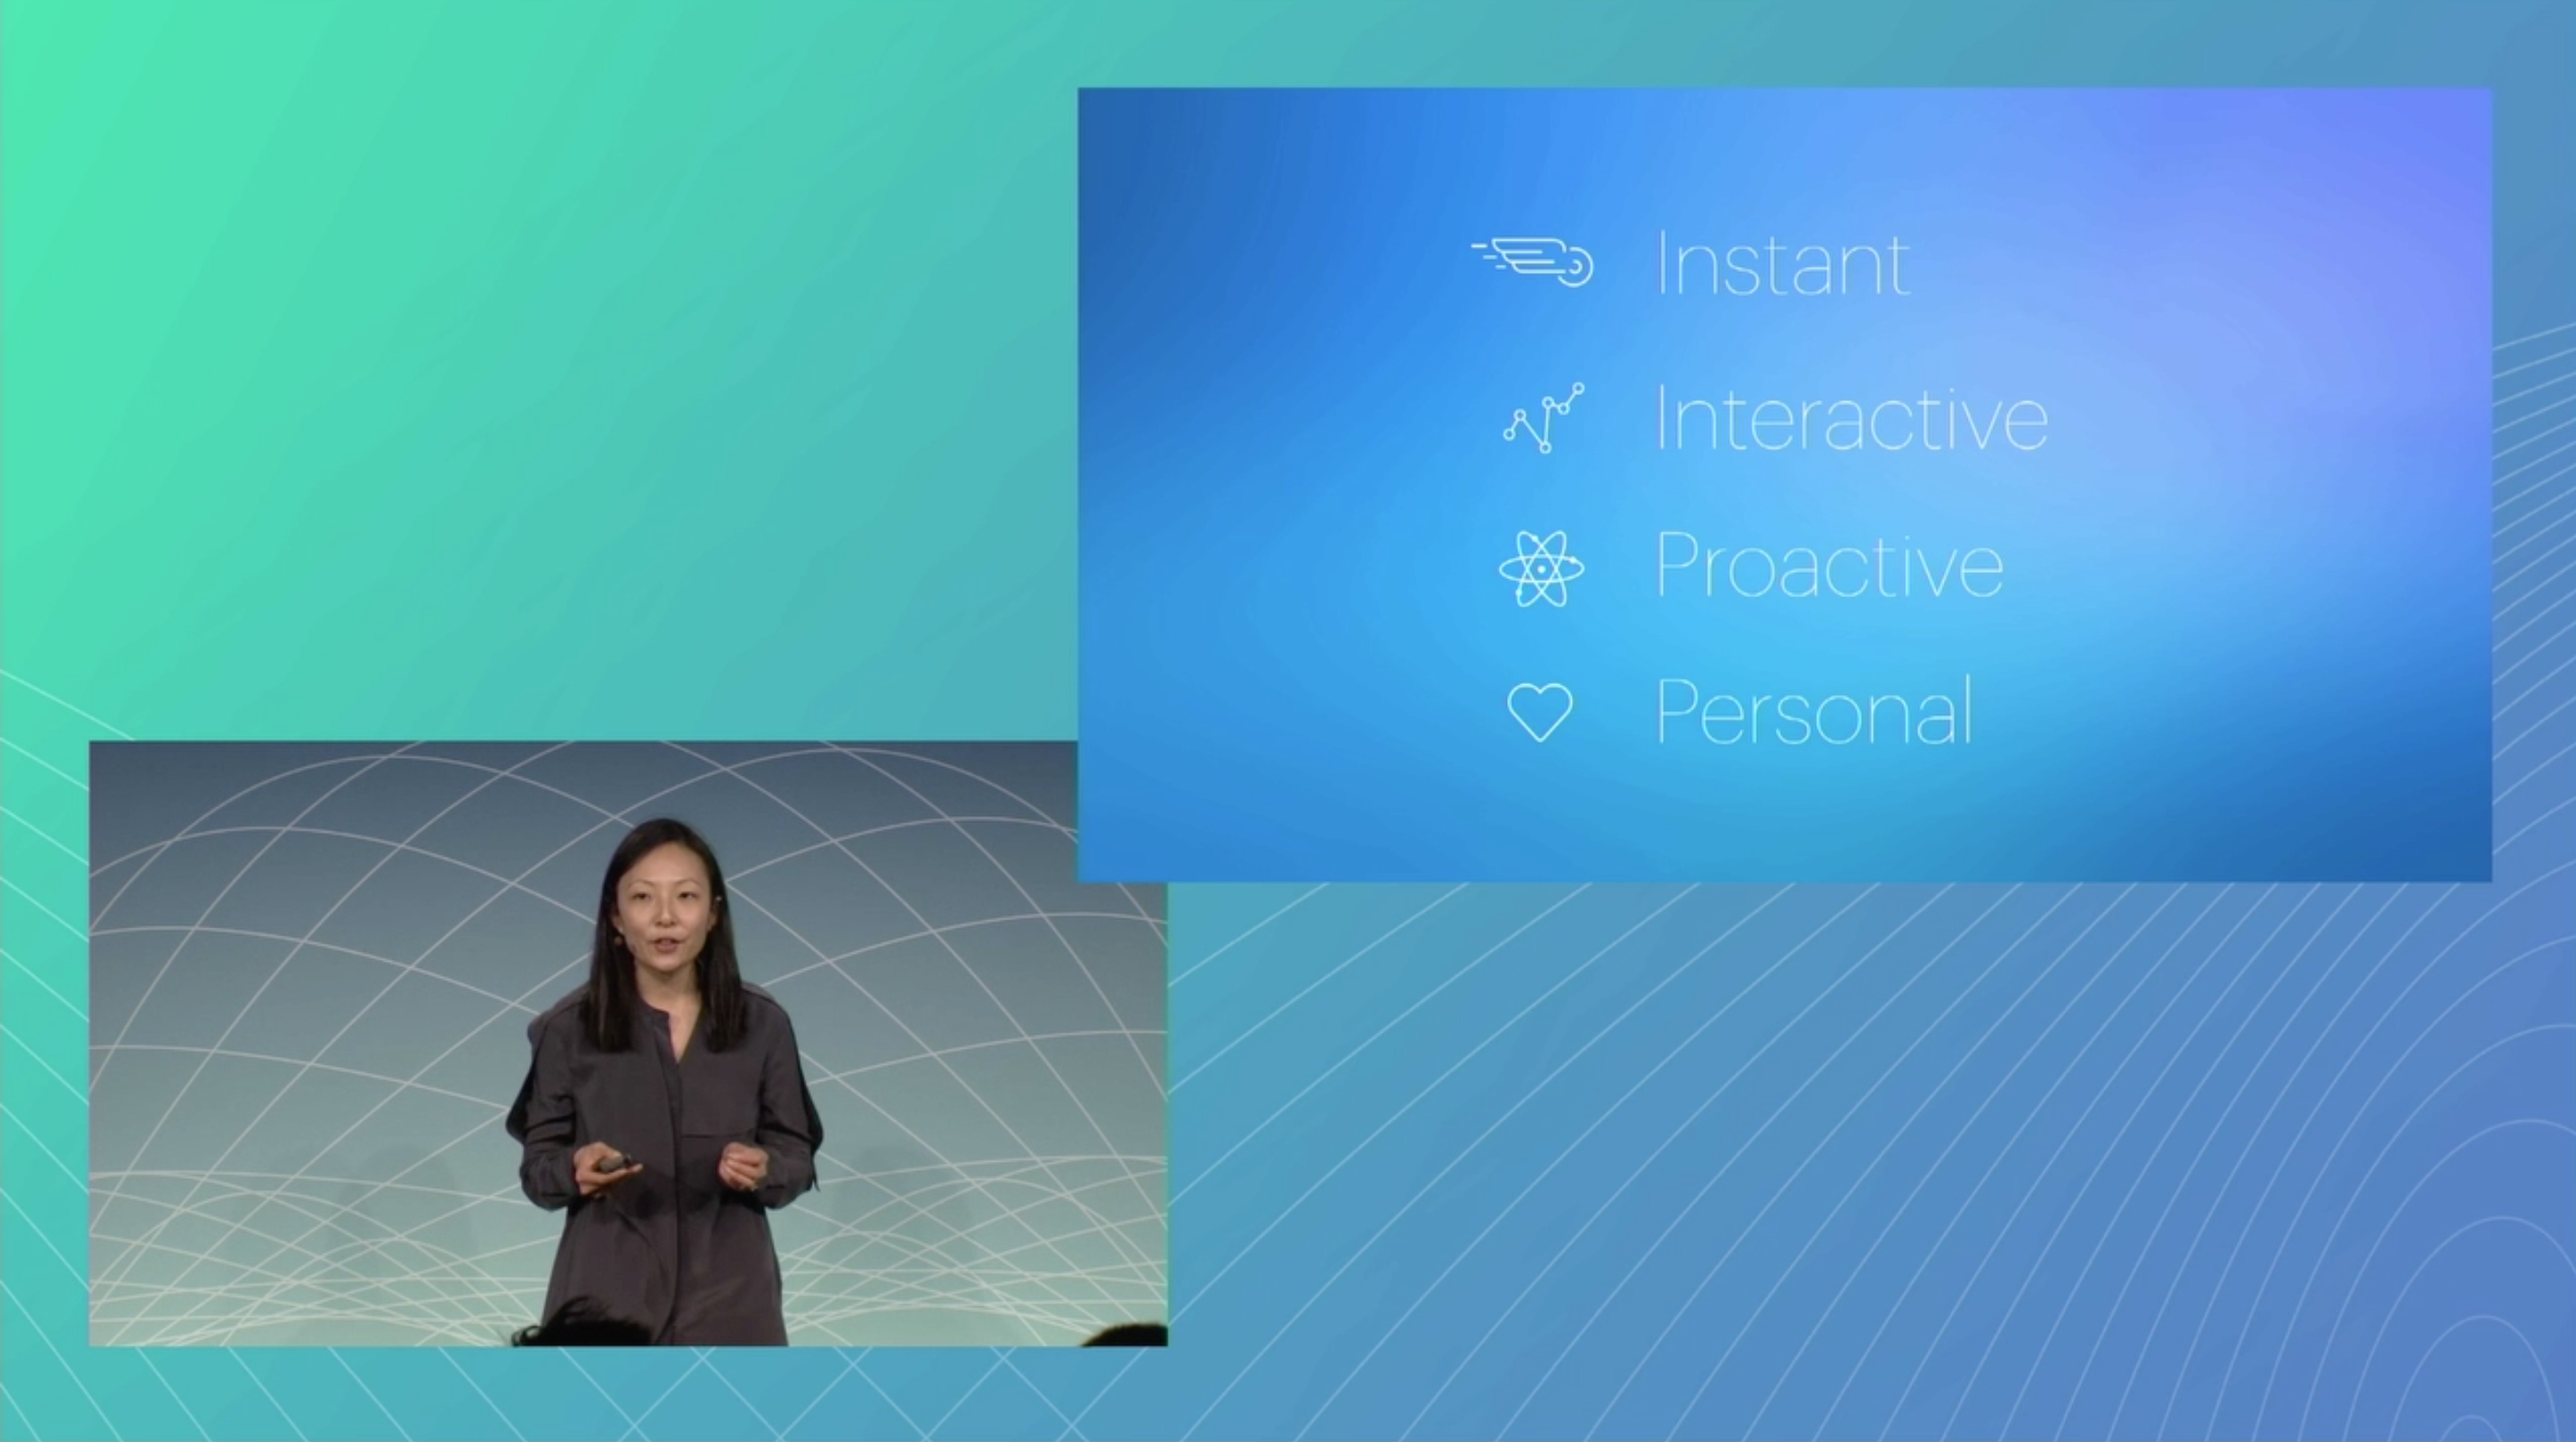 Jessica Lee introducing Messenger's business chatbots at Facebook F8.